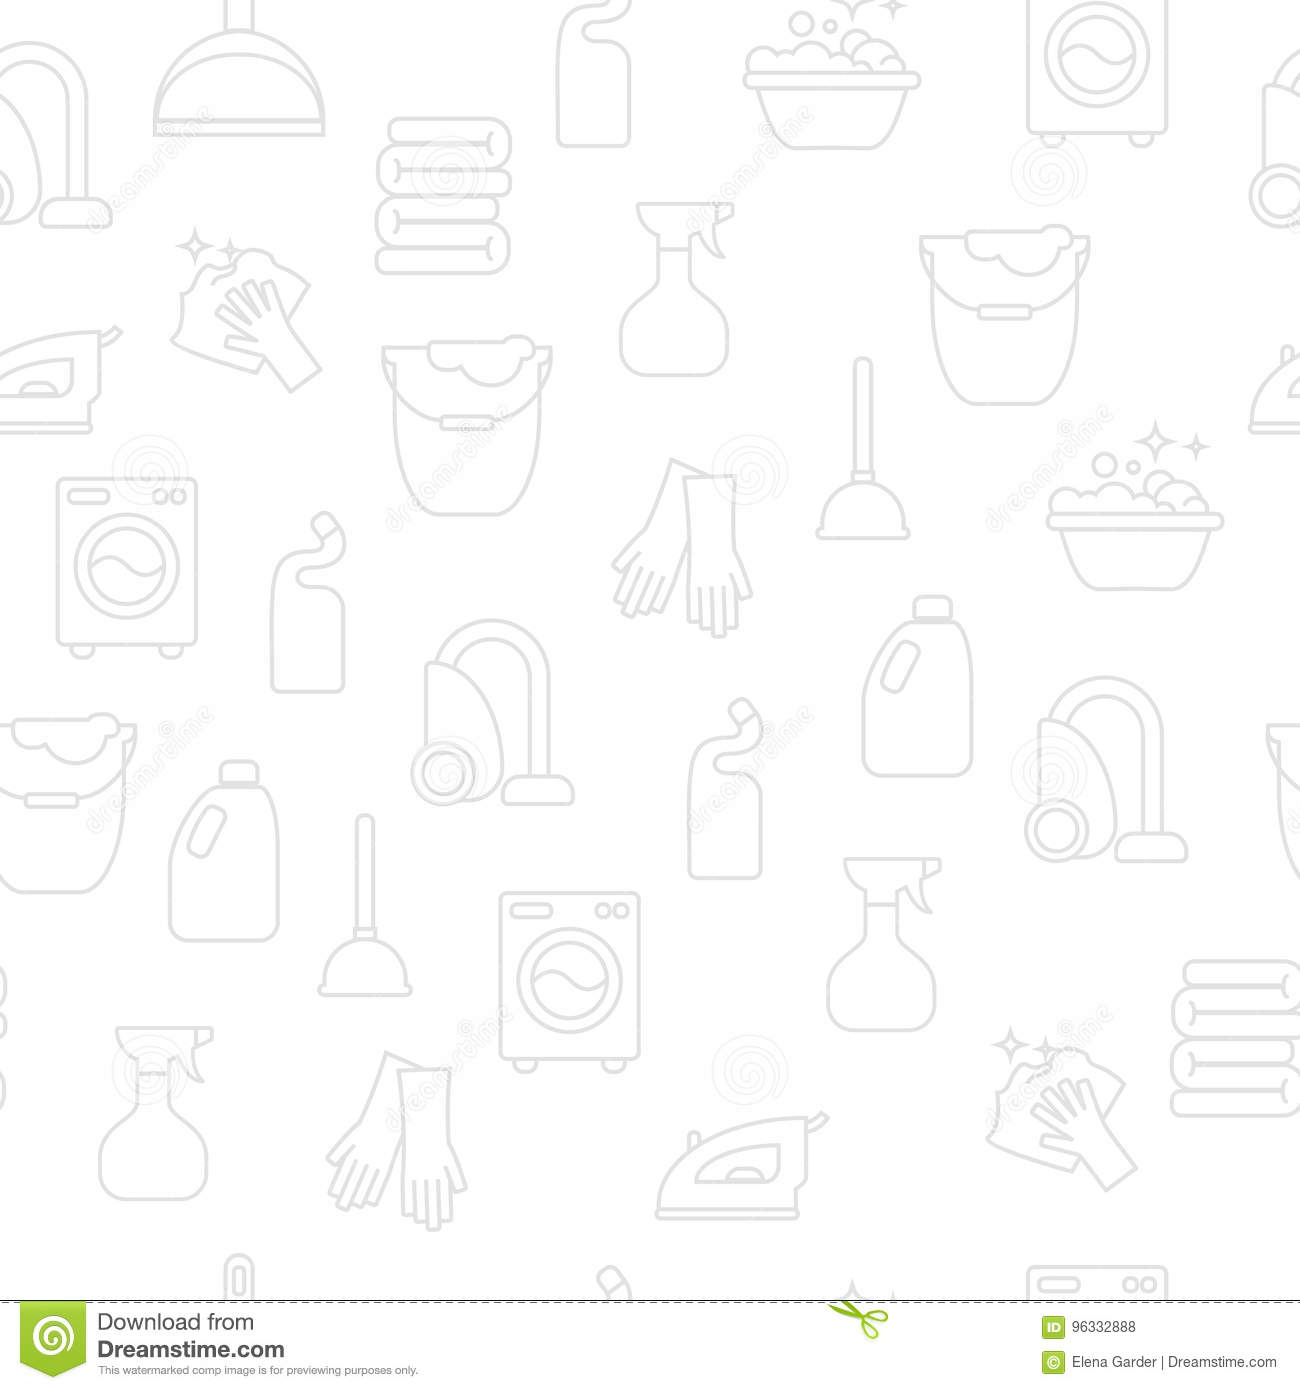 Washing, ironing, clean laundry line icons. Washing machine, iron, handwash and other clining icon. Order in the house linear sign